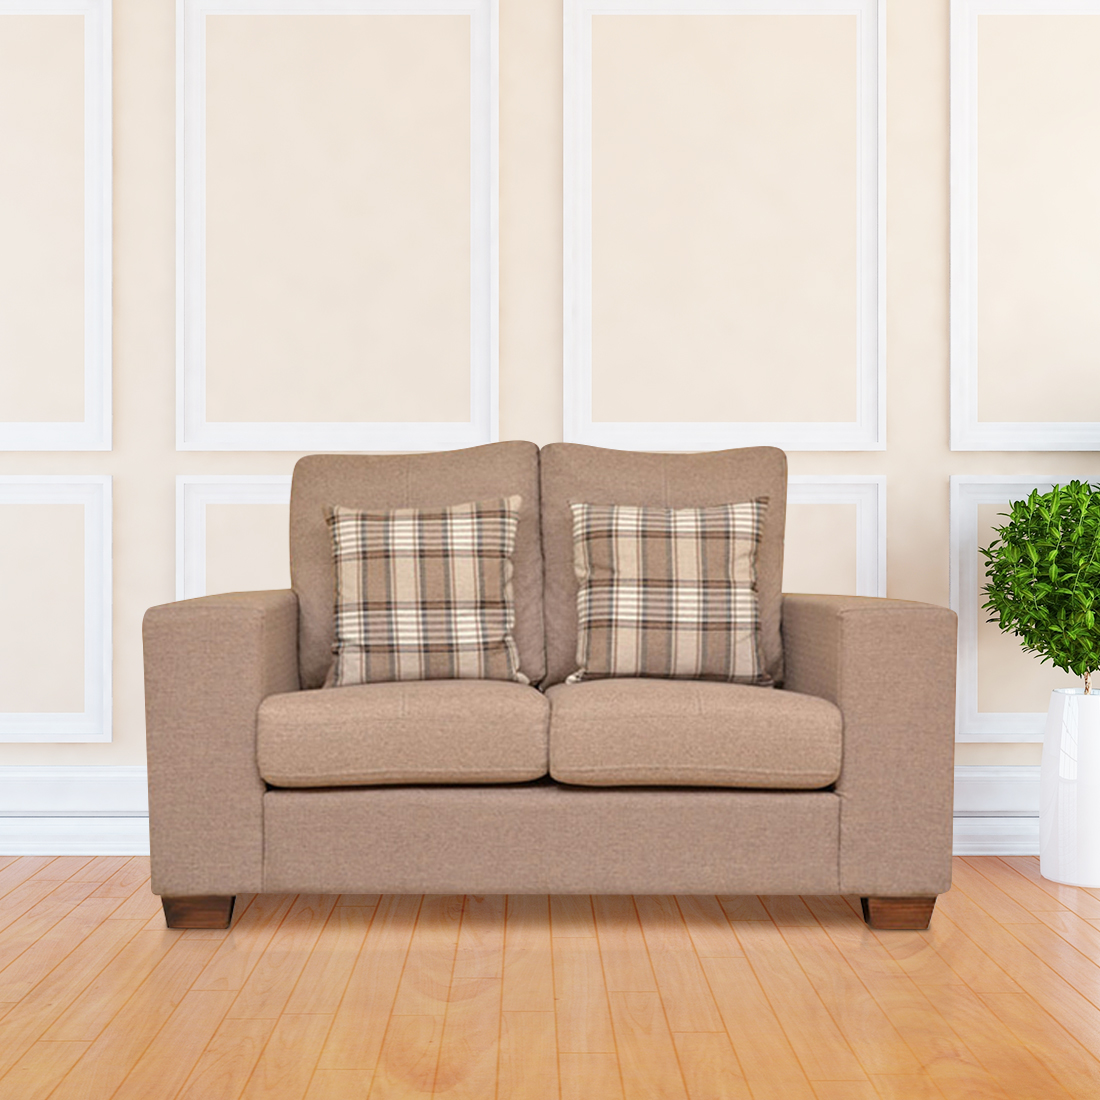 Edmond Fabric Two Seater Sofa in Brown Colour by HomeTown